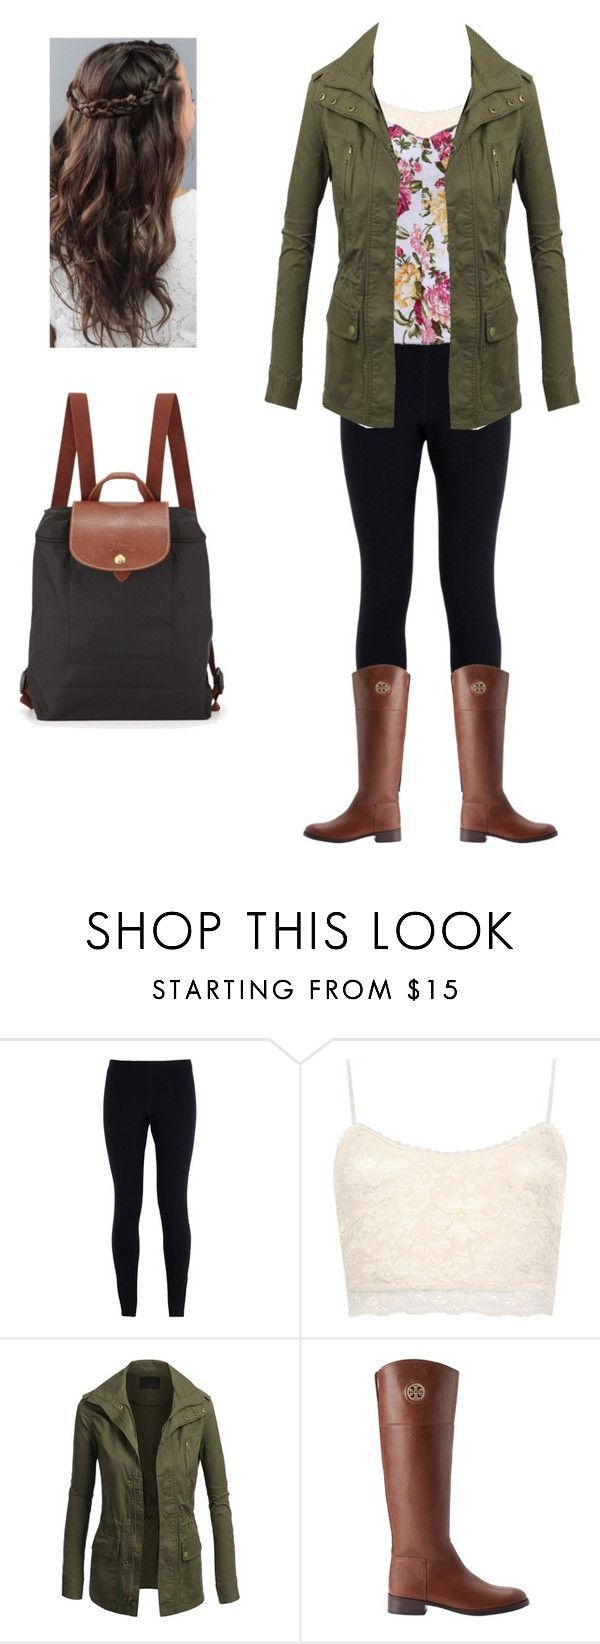 """""""Army Green Jacket"""" by laurenelizabeth1002 ❤ liked on Polyvore featuring мода, NIKE, WearAll, Tory Burch и Longchamp"""